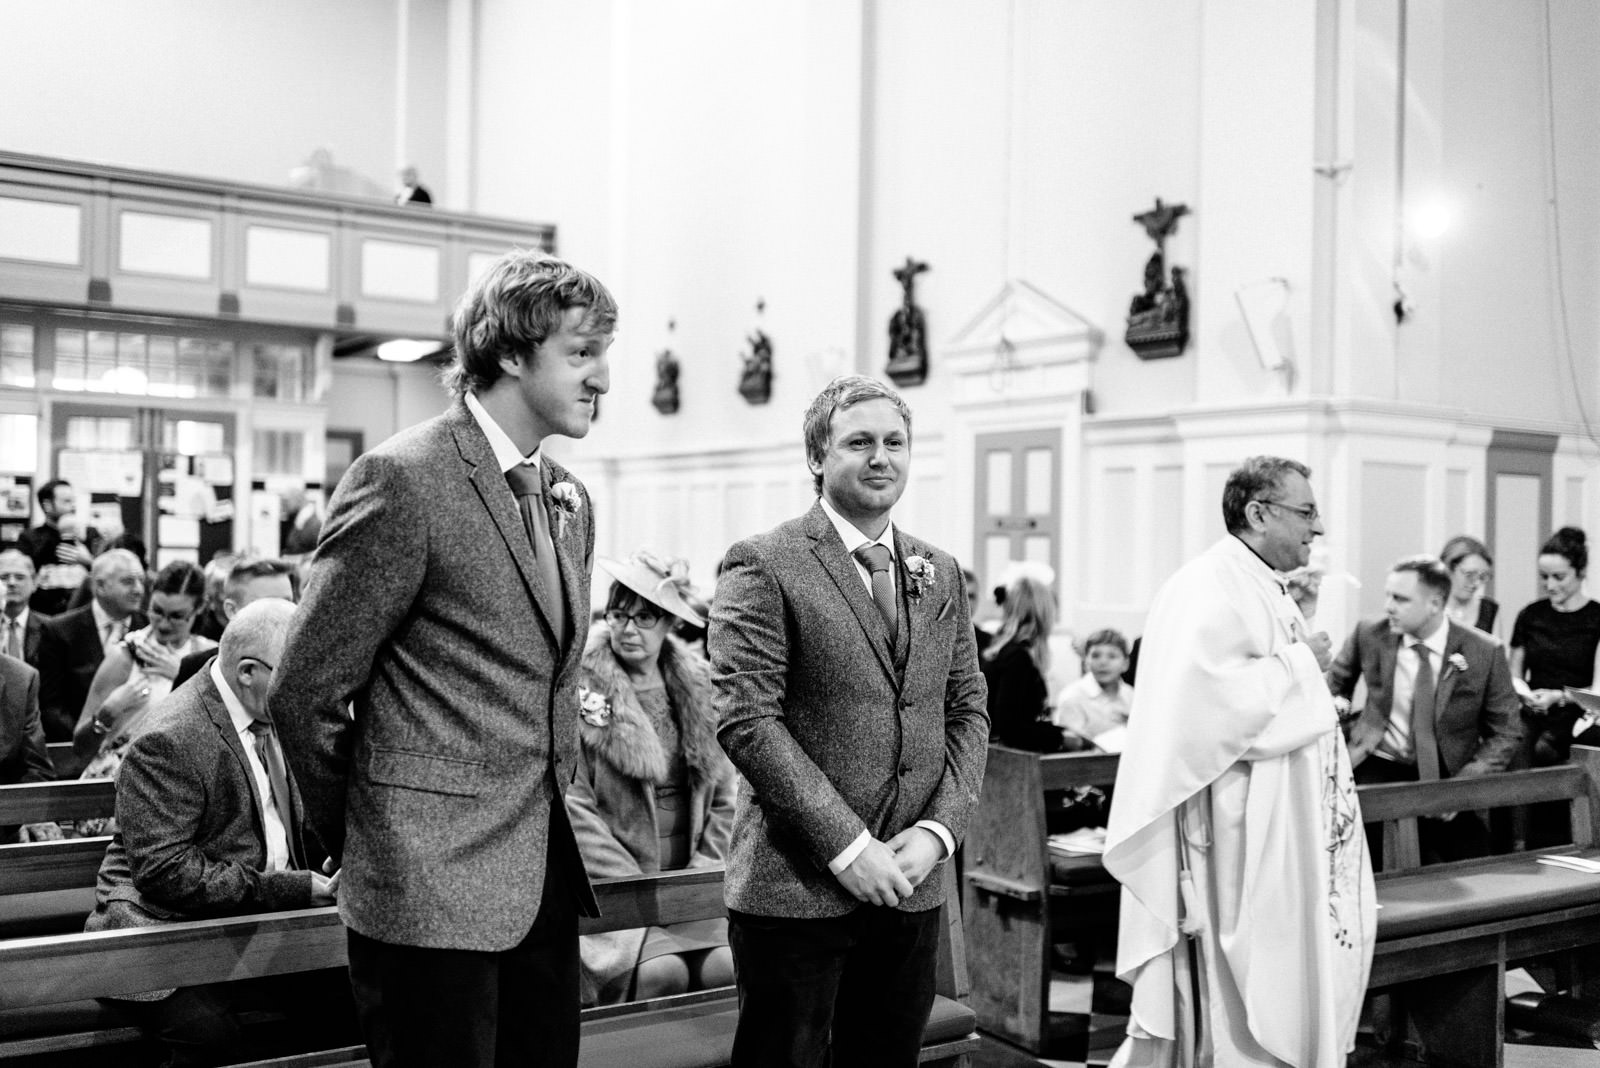 Best man and groom waiting for bride in church